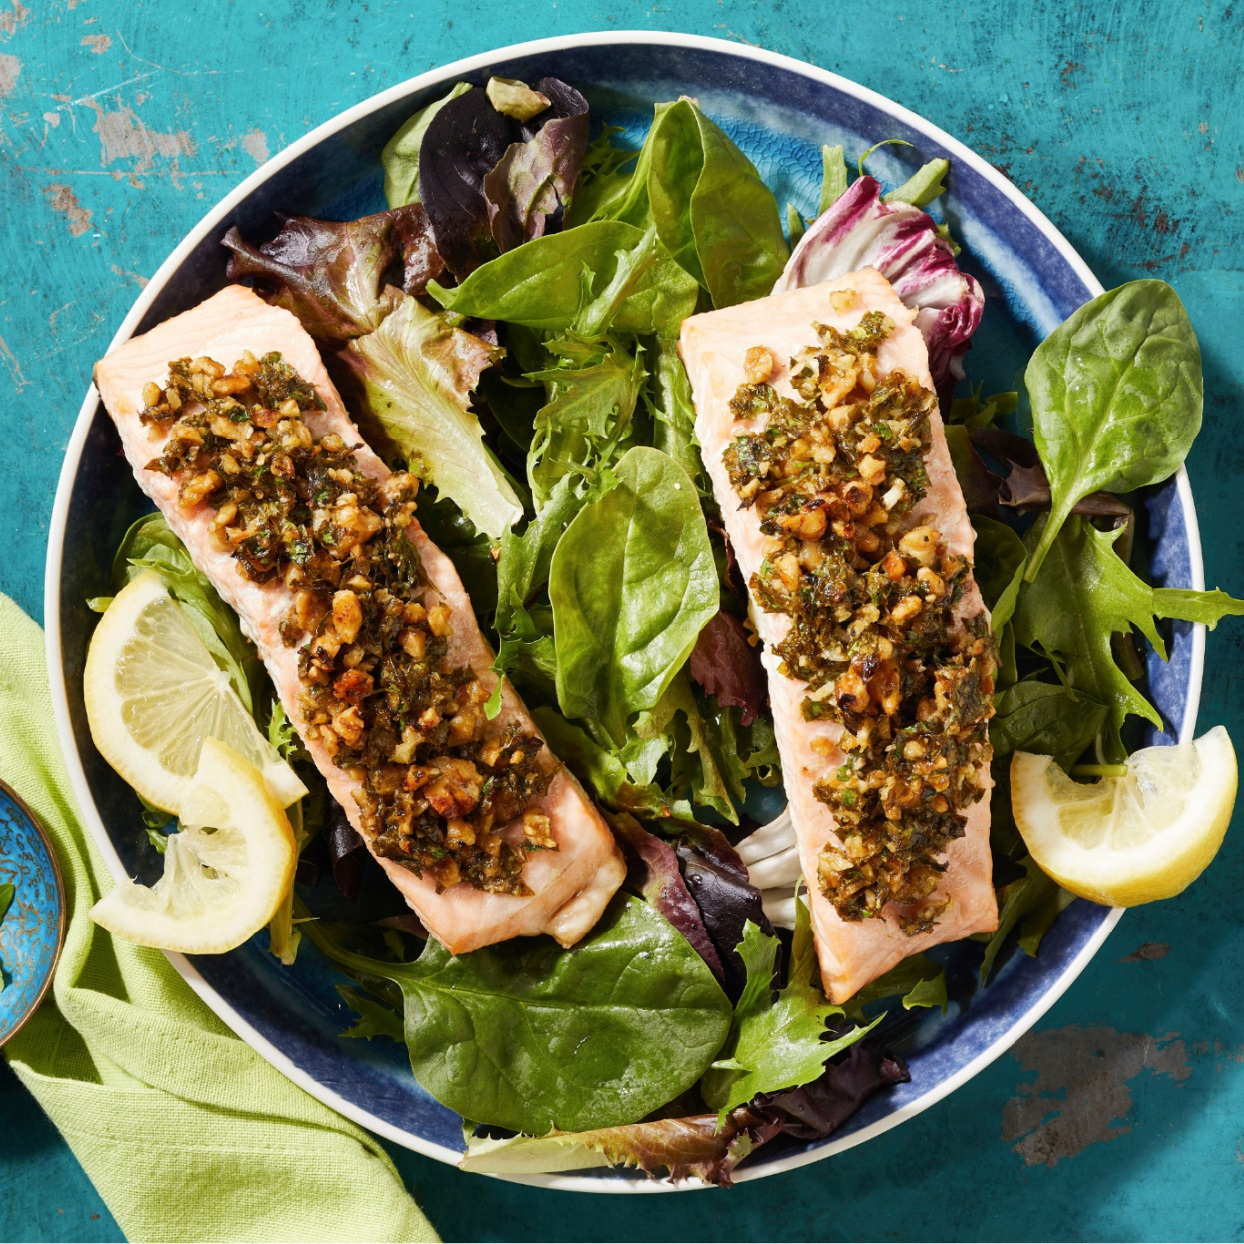 salmon crusted with parsley and walnuts on a bed of lettuce